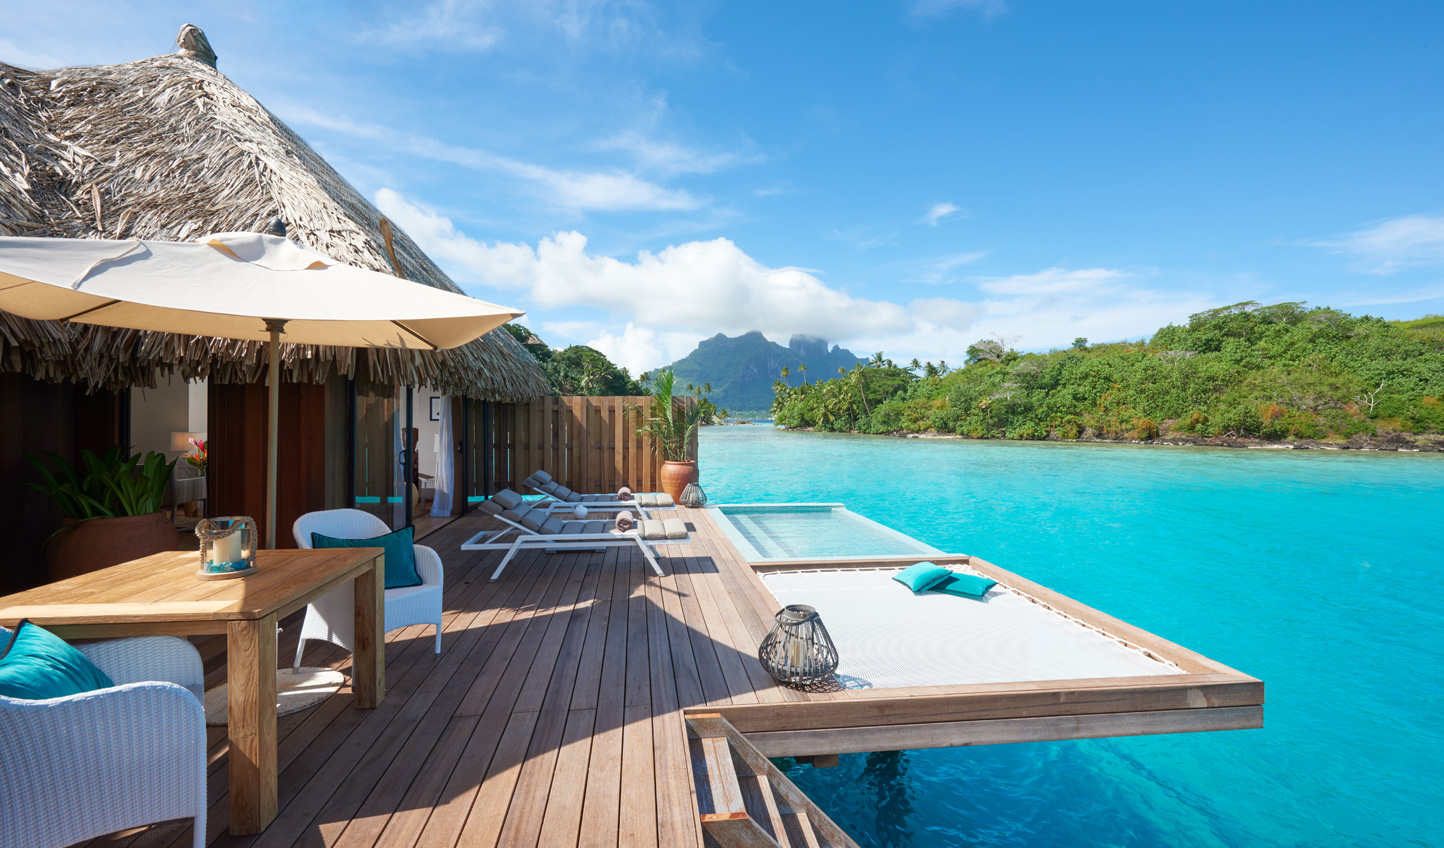 Conrad Bora Bora Nui | Luxury Hotels & Resorts in Bora Bora, French Polynesia